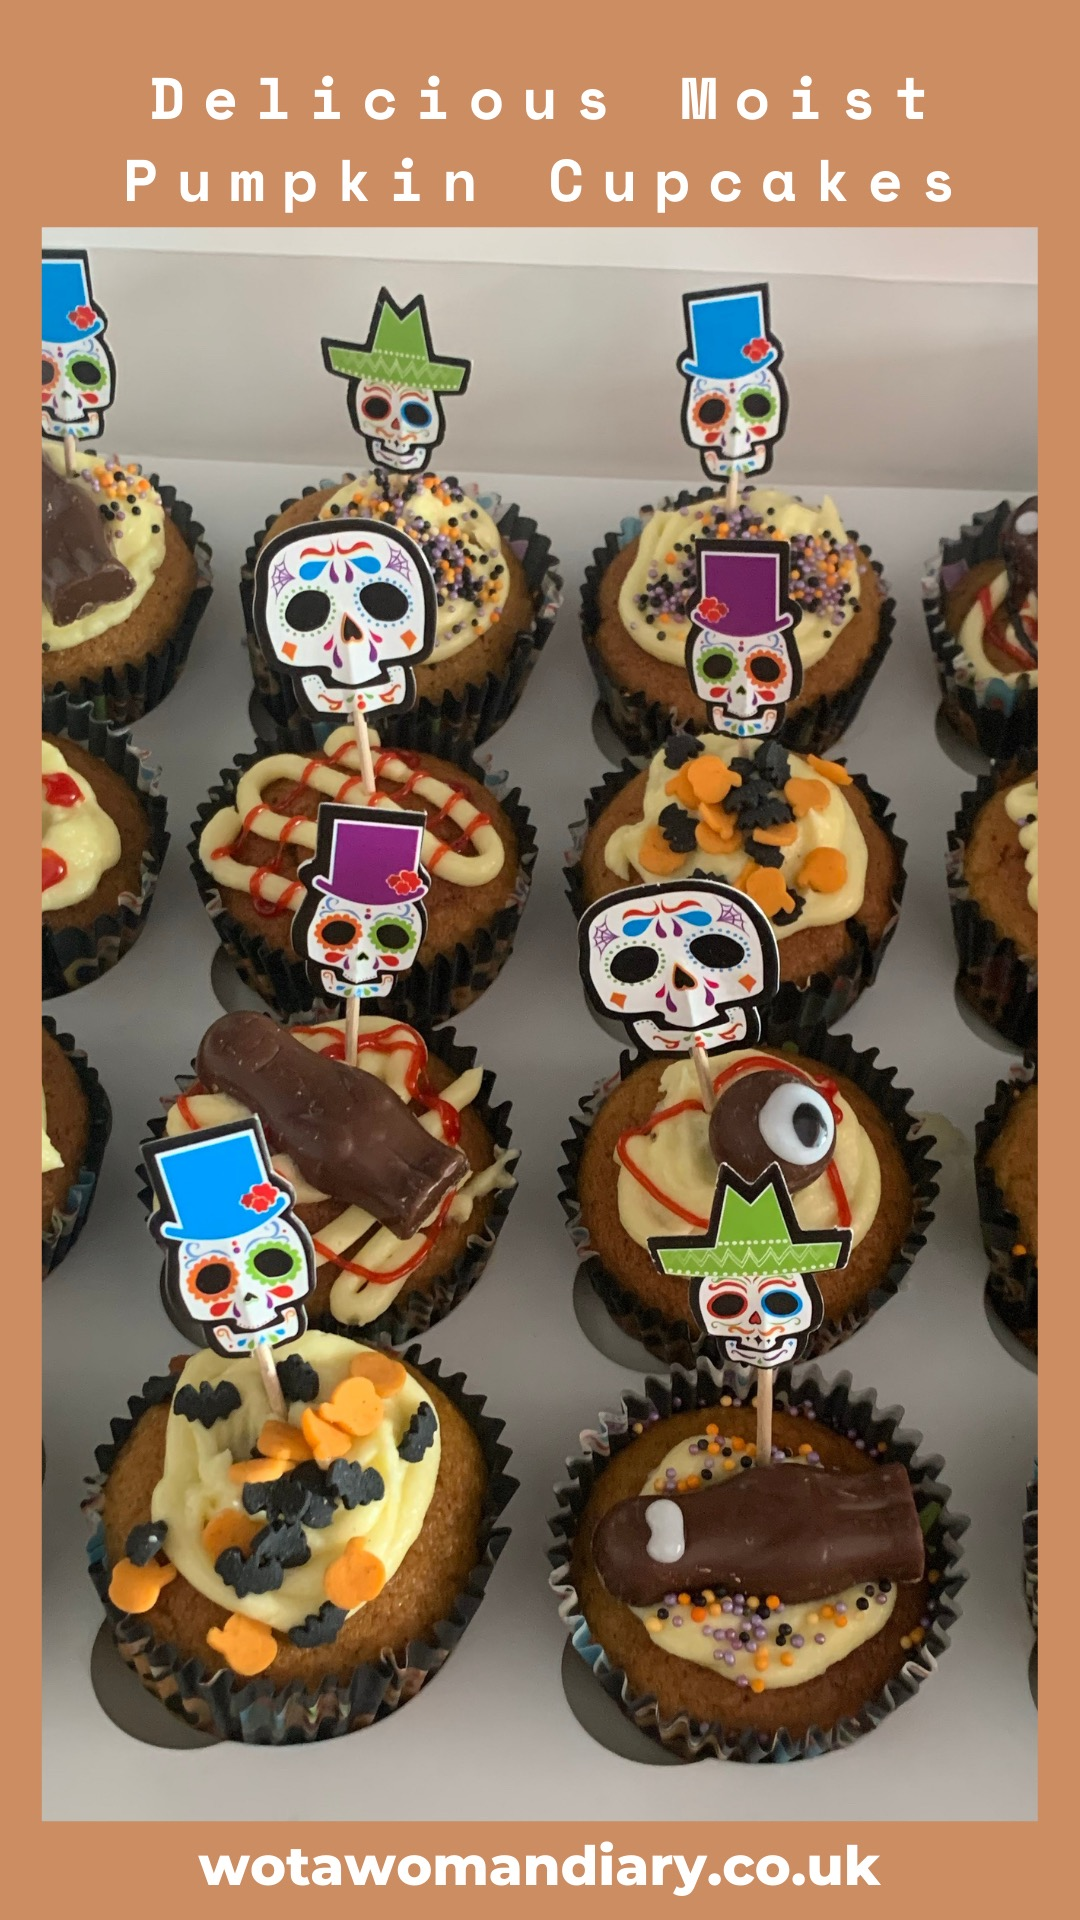 a tray of decorated pumpkin cupcakes looking delicious